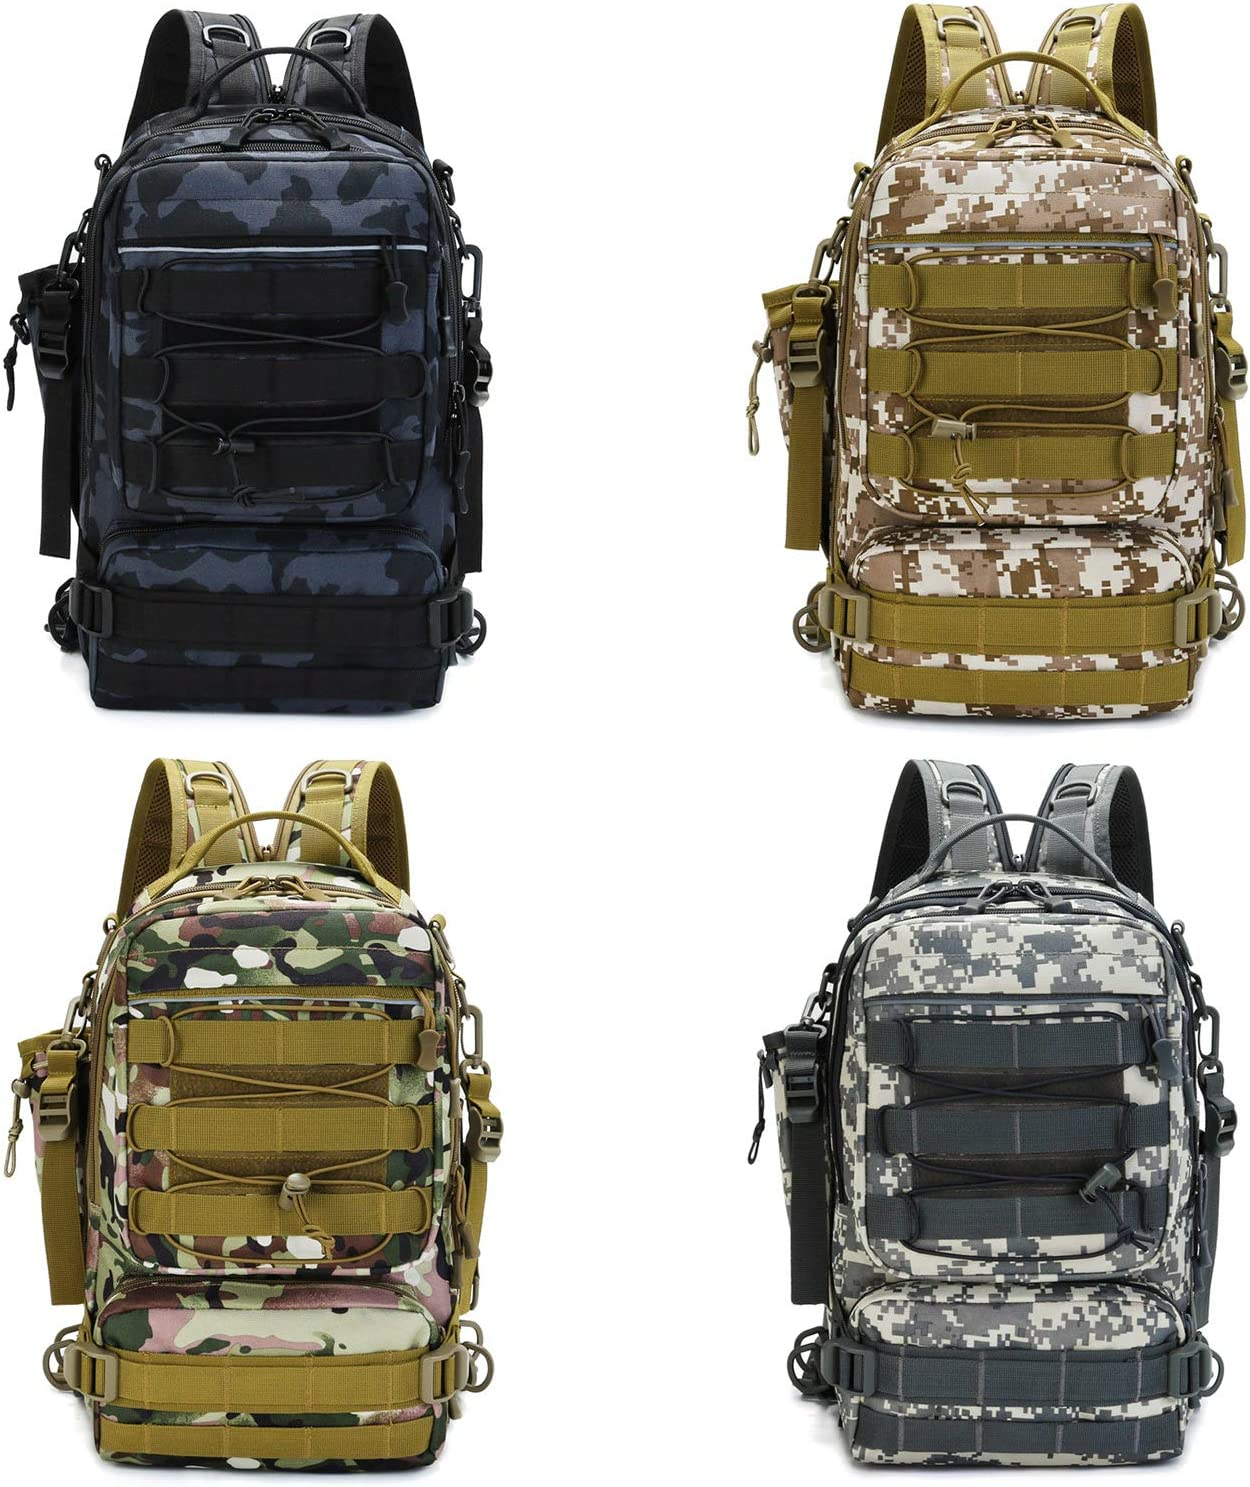 Thekuai Fishing Tackle Backpack Storage Bag Large Water-Resistant Fishing Gear Bags with Rod Holder Shoulder Backpack and a Sturdy Fishing Tackle Box Outdoor Shoulder Backpack